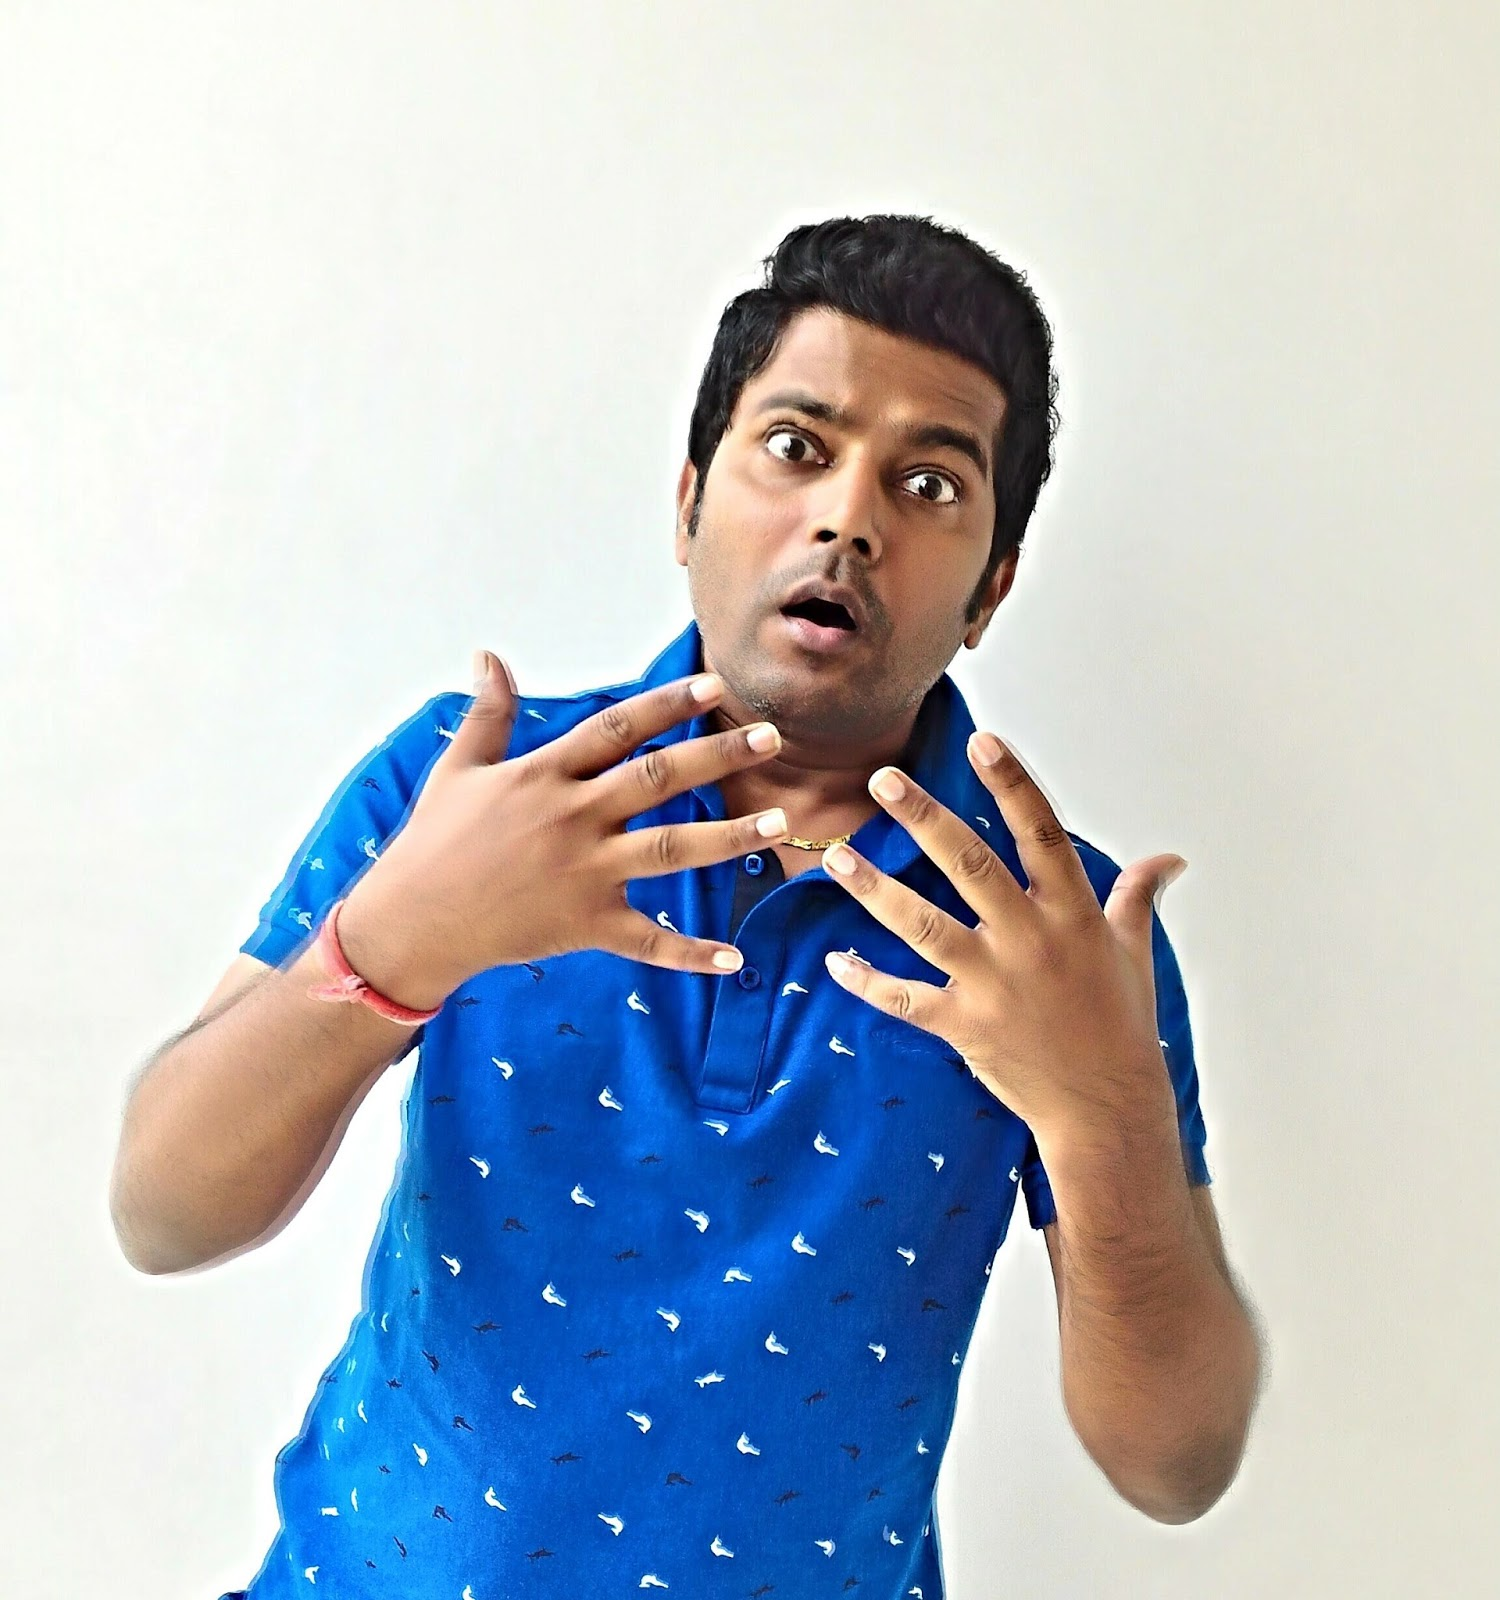 navin prabhakar youtubenavin prabhakar pehchan kaun video, navin prabhakar pehchan kaun, navin prabhakar age, navin prabhakar wife, navin prabhakar youtube, navin prabhakar pehchan kaun mp3, navin prabhakar best mimicry, navin prabhakar pehchan kaun video download, navin prabhakar pehchan kaun episode, navin prabhakar comedy show, navin prabhakar laughter challenge, navin prabhakar comedy mimicry, navin prabhakar contact no, navin prabhakar comedy free download, navin prabhakar best comedy, navin prabhakar pehchan kaun ringtone, navin prabhakar wragge, navin prabhakar feroz khan, navin prabhakar comedy youtube, navin prabhakar videos free download